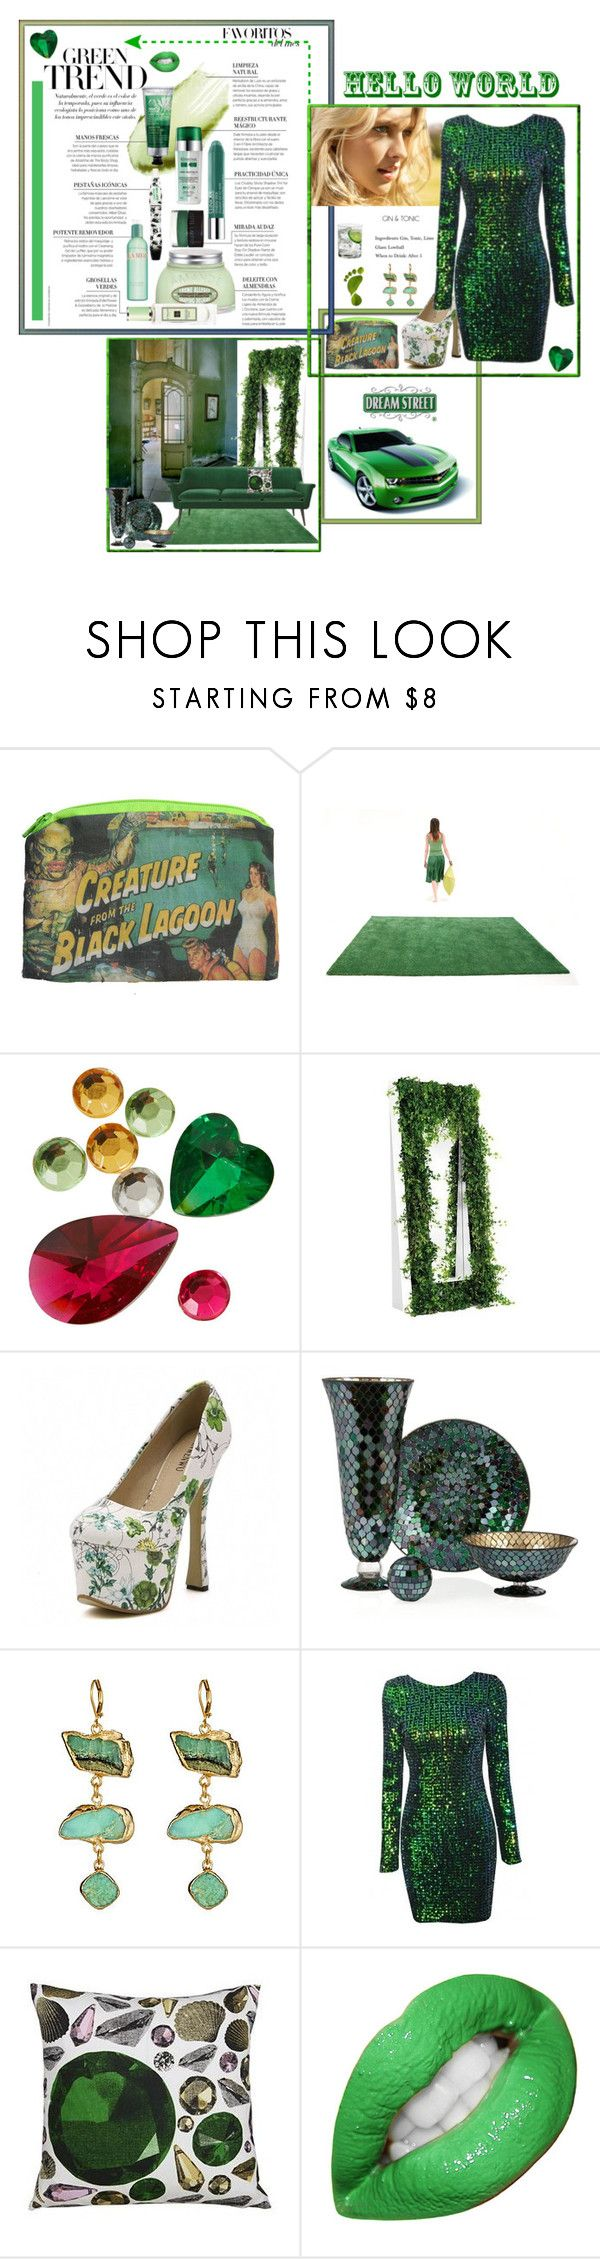 """Green"" by amethystes ❤ liked on Polyvore featuring nanimarquina, Topshop, Opinion Ciatti, Pantone, Mali Sabatasso, Studio Lisa Bengtsson, GREEN, Sequins, jollychic and estyle"